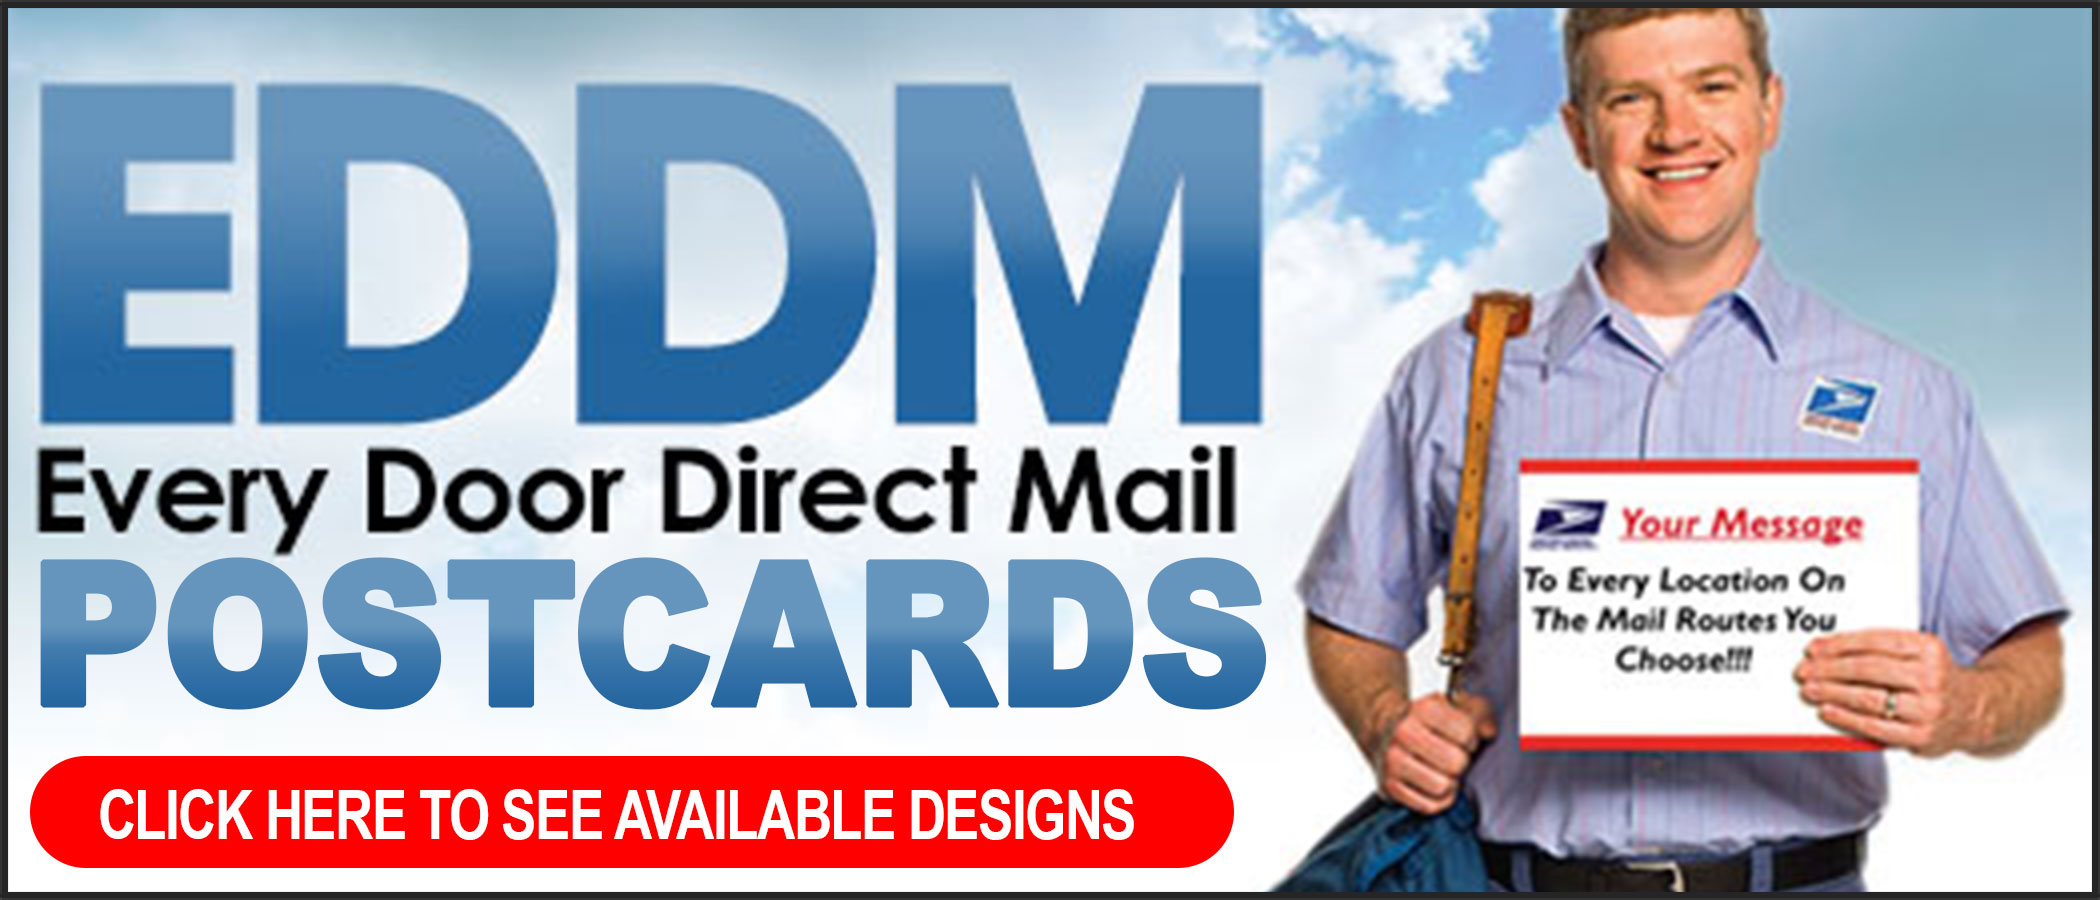 direct-mail-postcards.jpg